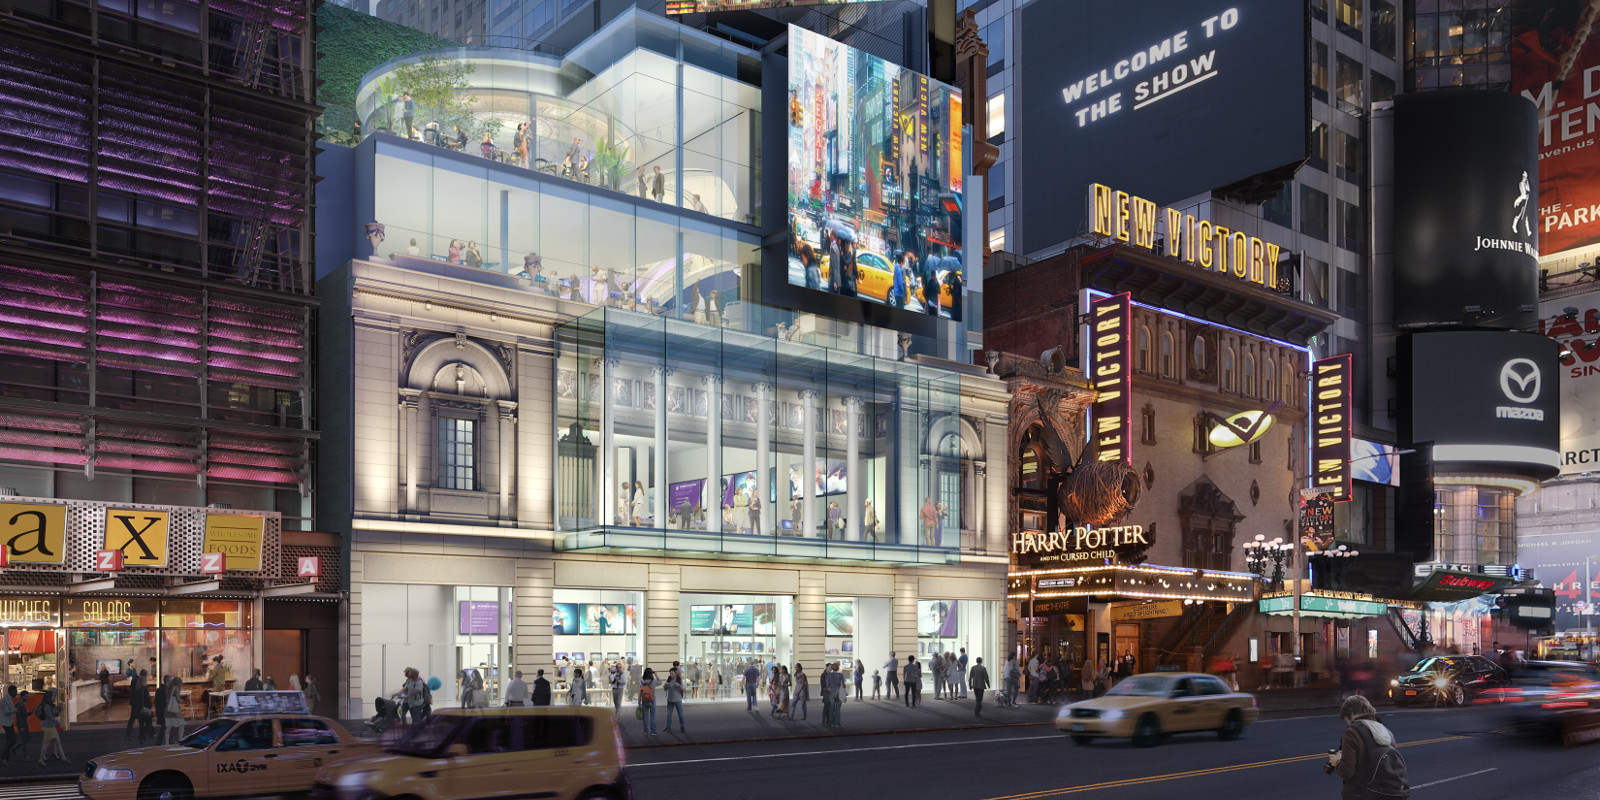 Times Square Theater rendering via Stillman Development International.